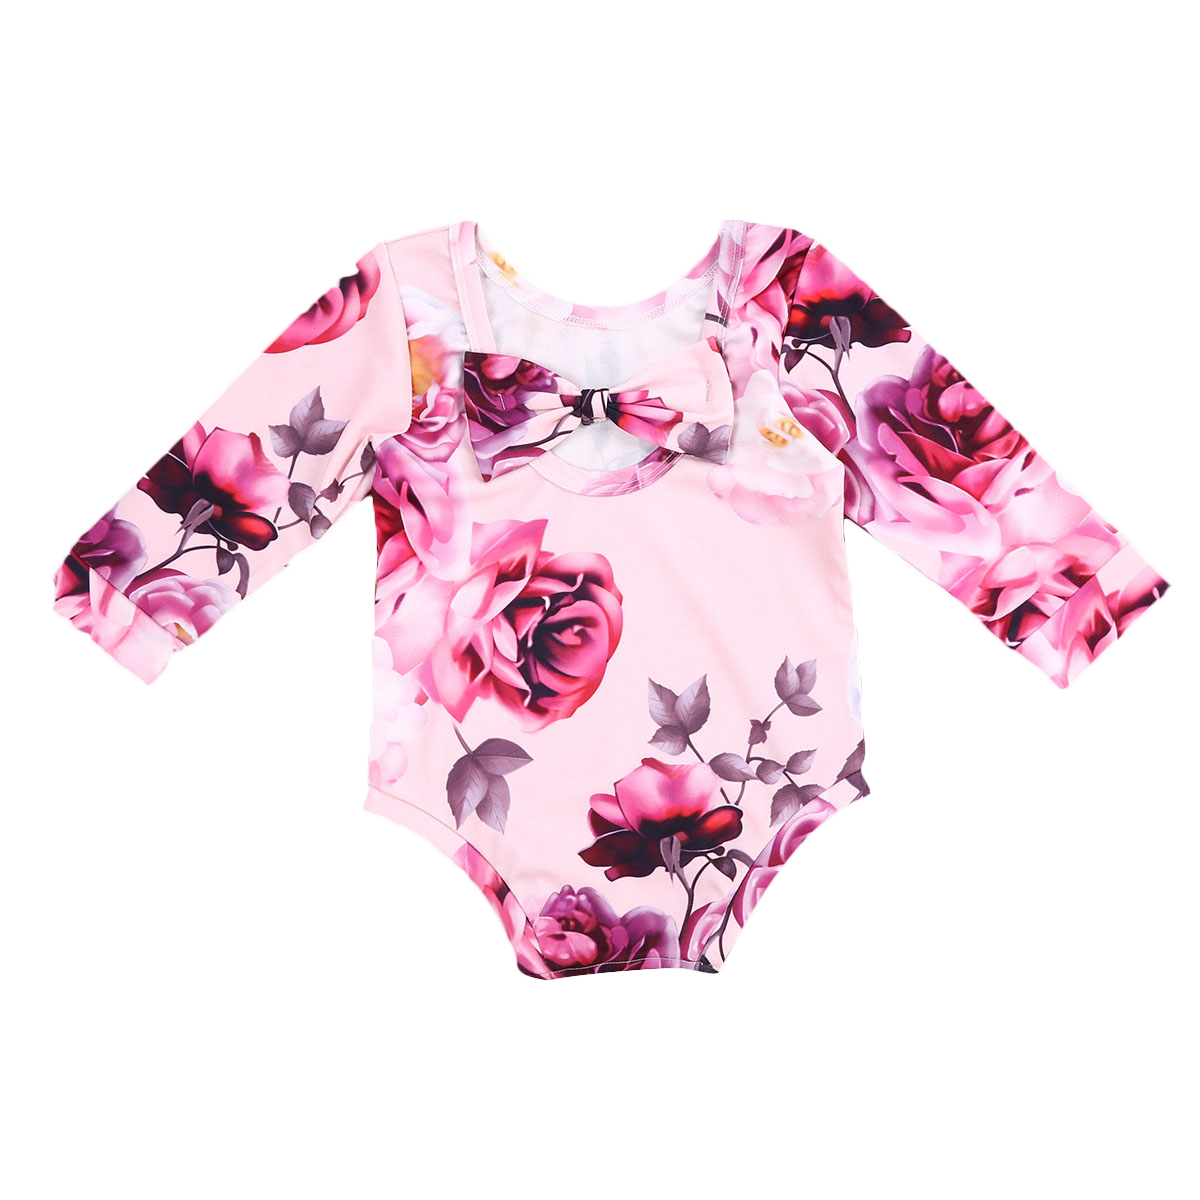 Pudcoco Newborn Infant Baby Girls Kids Cotton Floral Romper Jumpsuit Long Sleeve Winter Clothes Outfit Toddler OnePiece newborn baby rompers baby clothing 100% cotton infant jumpsuit ropa bebe long sleeve girl boys rompers costumes baby romper